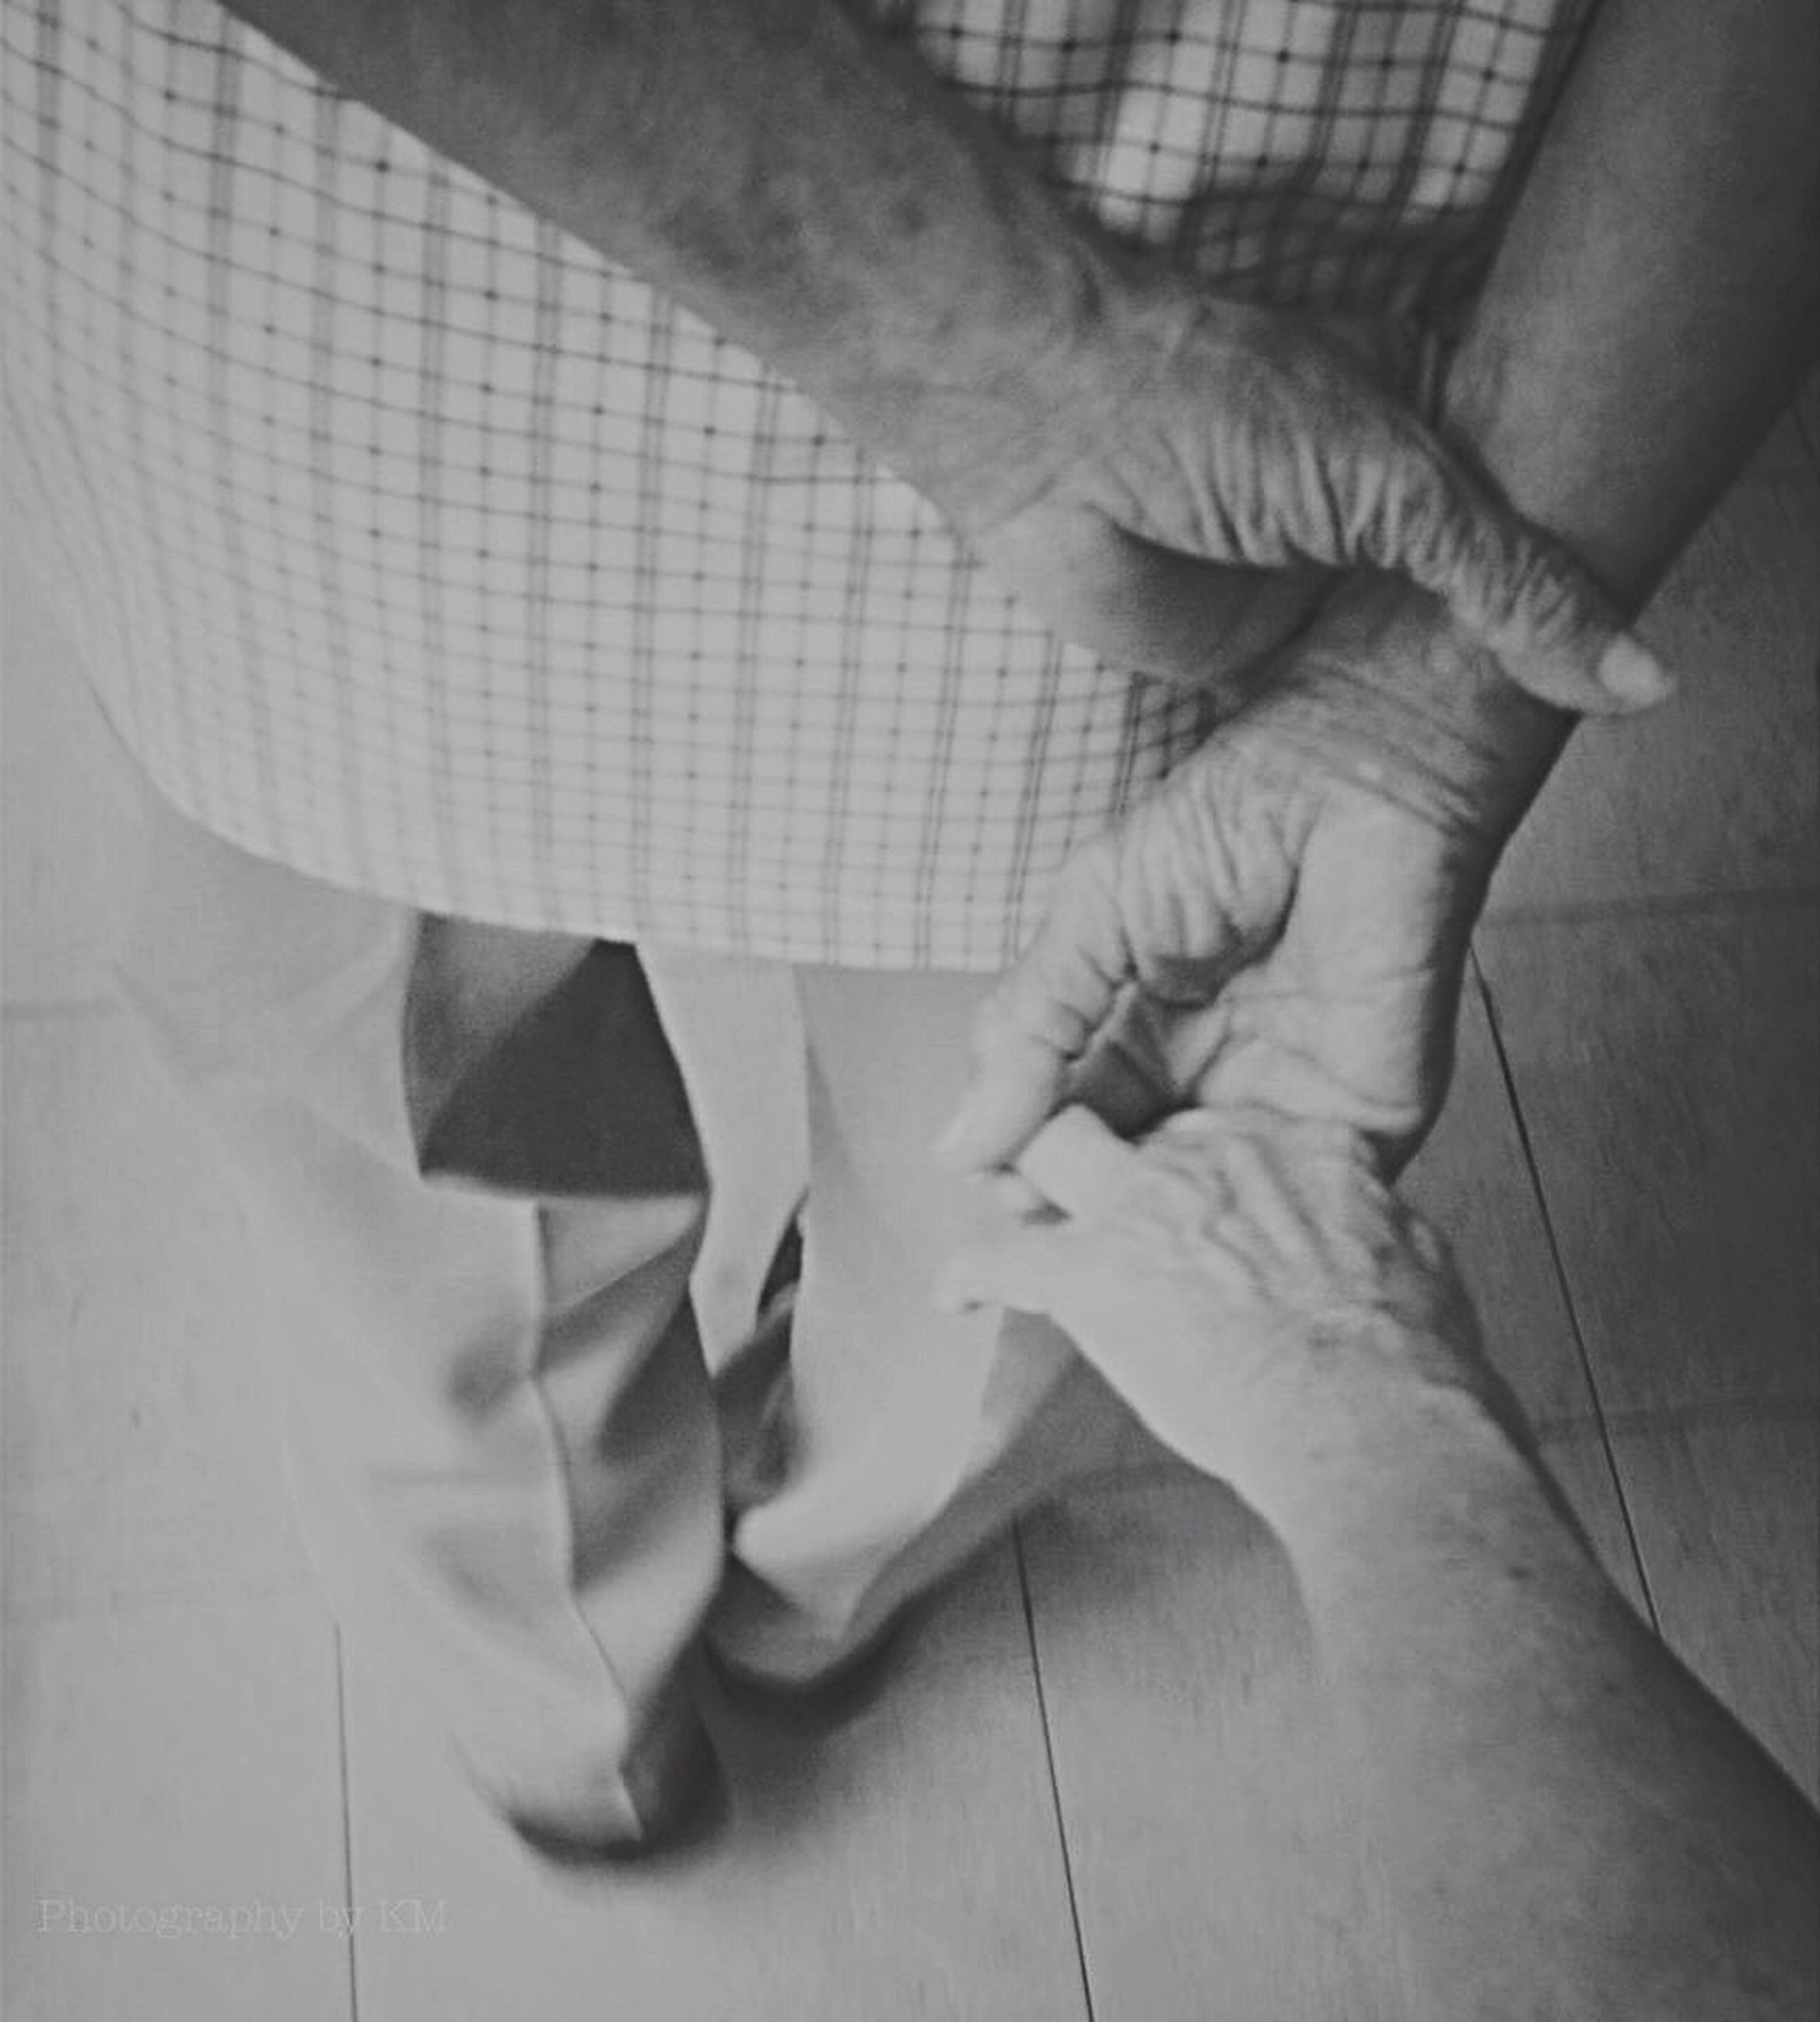 indoors, person, lifestyles, part of, leisure activity, low section, barefoot, cropped, men, human finger, human foot, high angle view, close-up, unknown gender